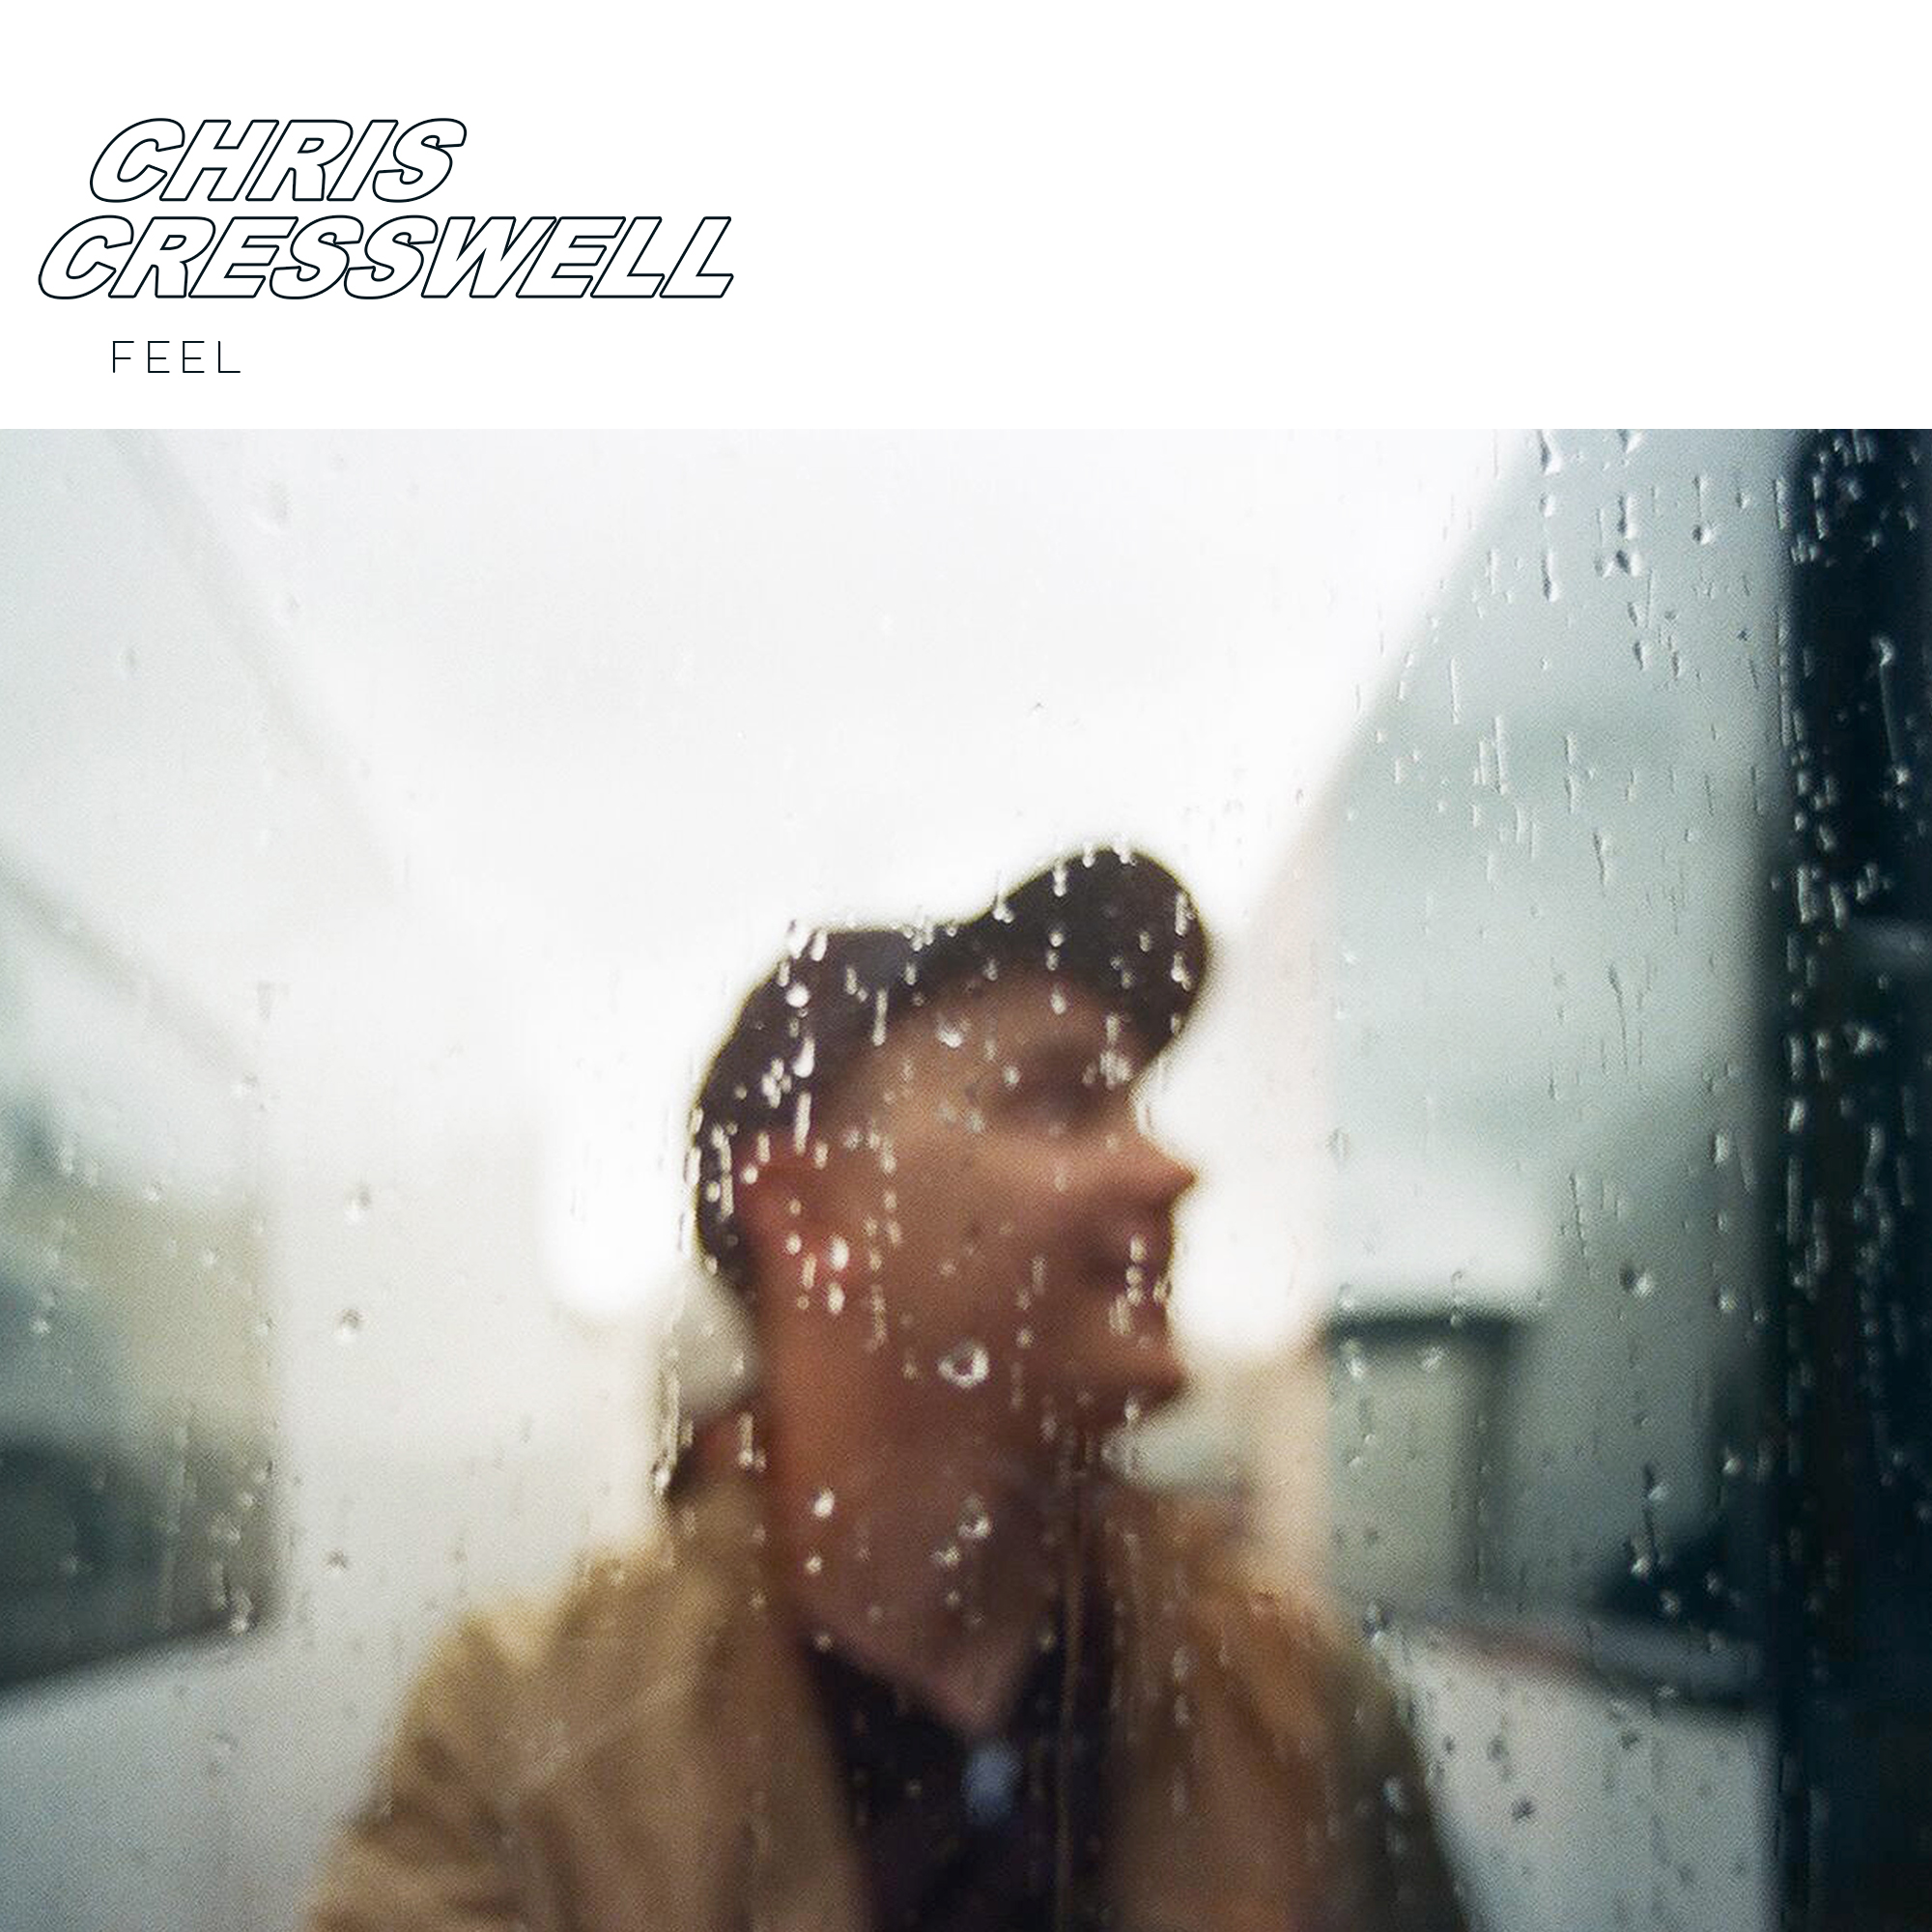 Chris Cresswell – Feel (Single)